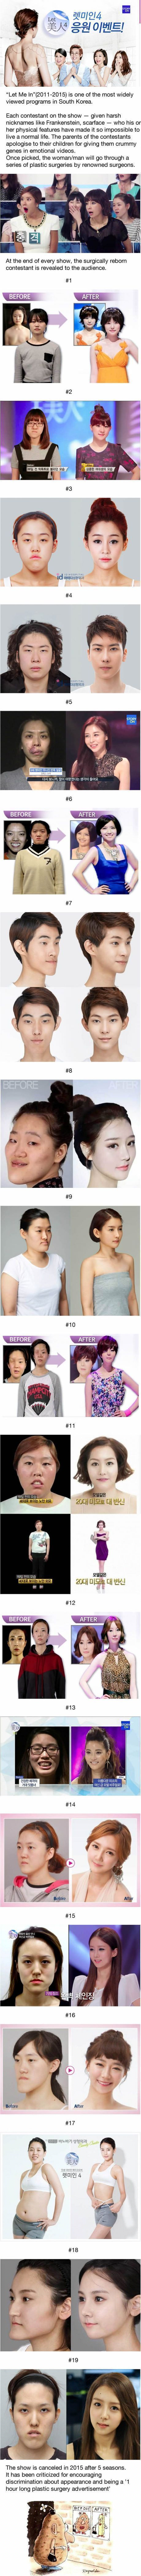 #Korean #photos #Plastic #Surgery #koreanskin #k